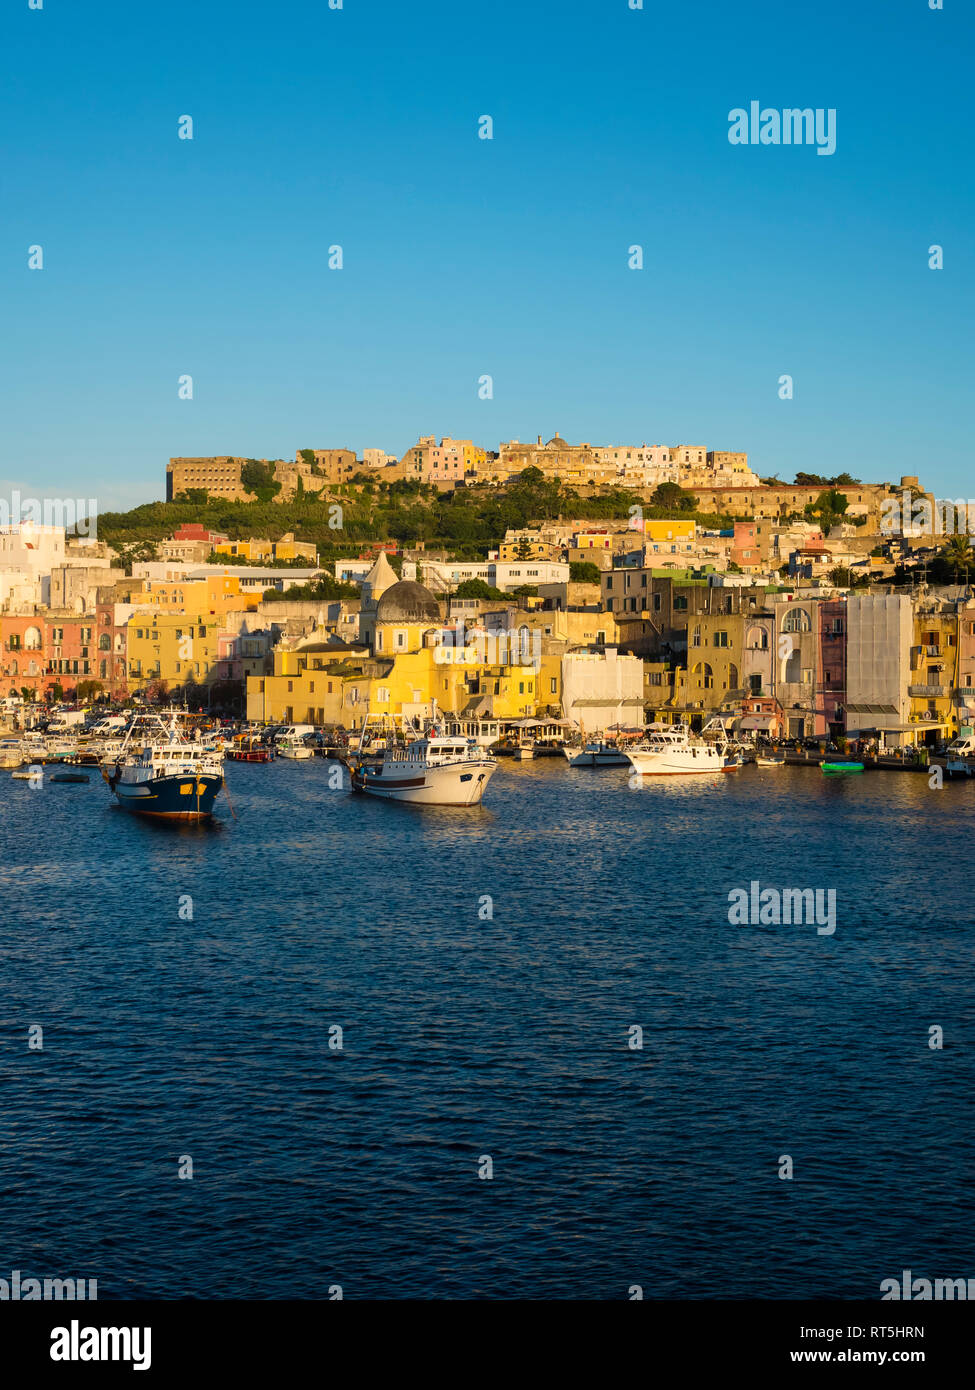 Italy, Campania, Naples, Gulf of Naples, Procida Island, town in the morning light - Stock Image